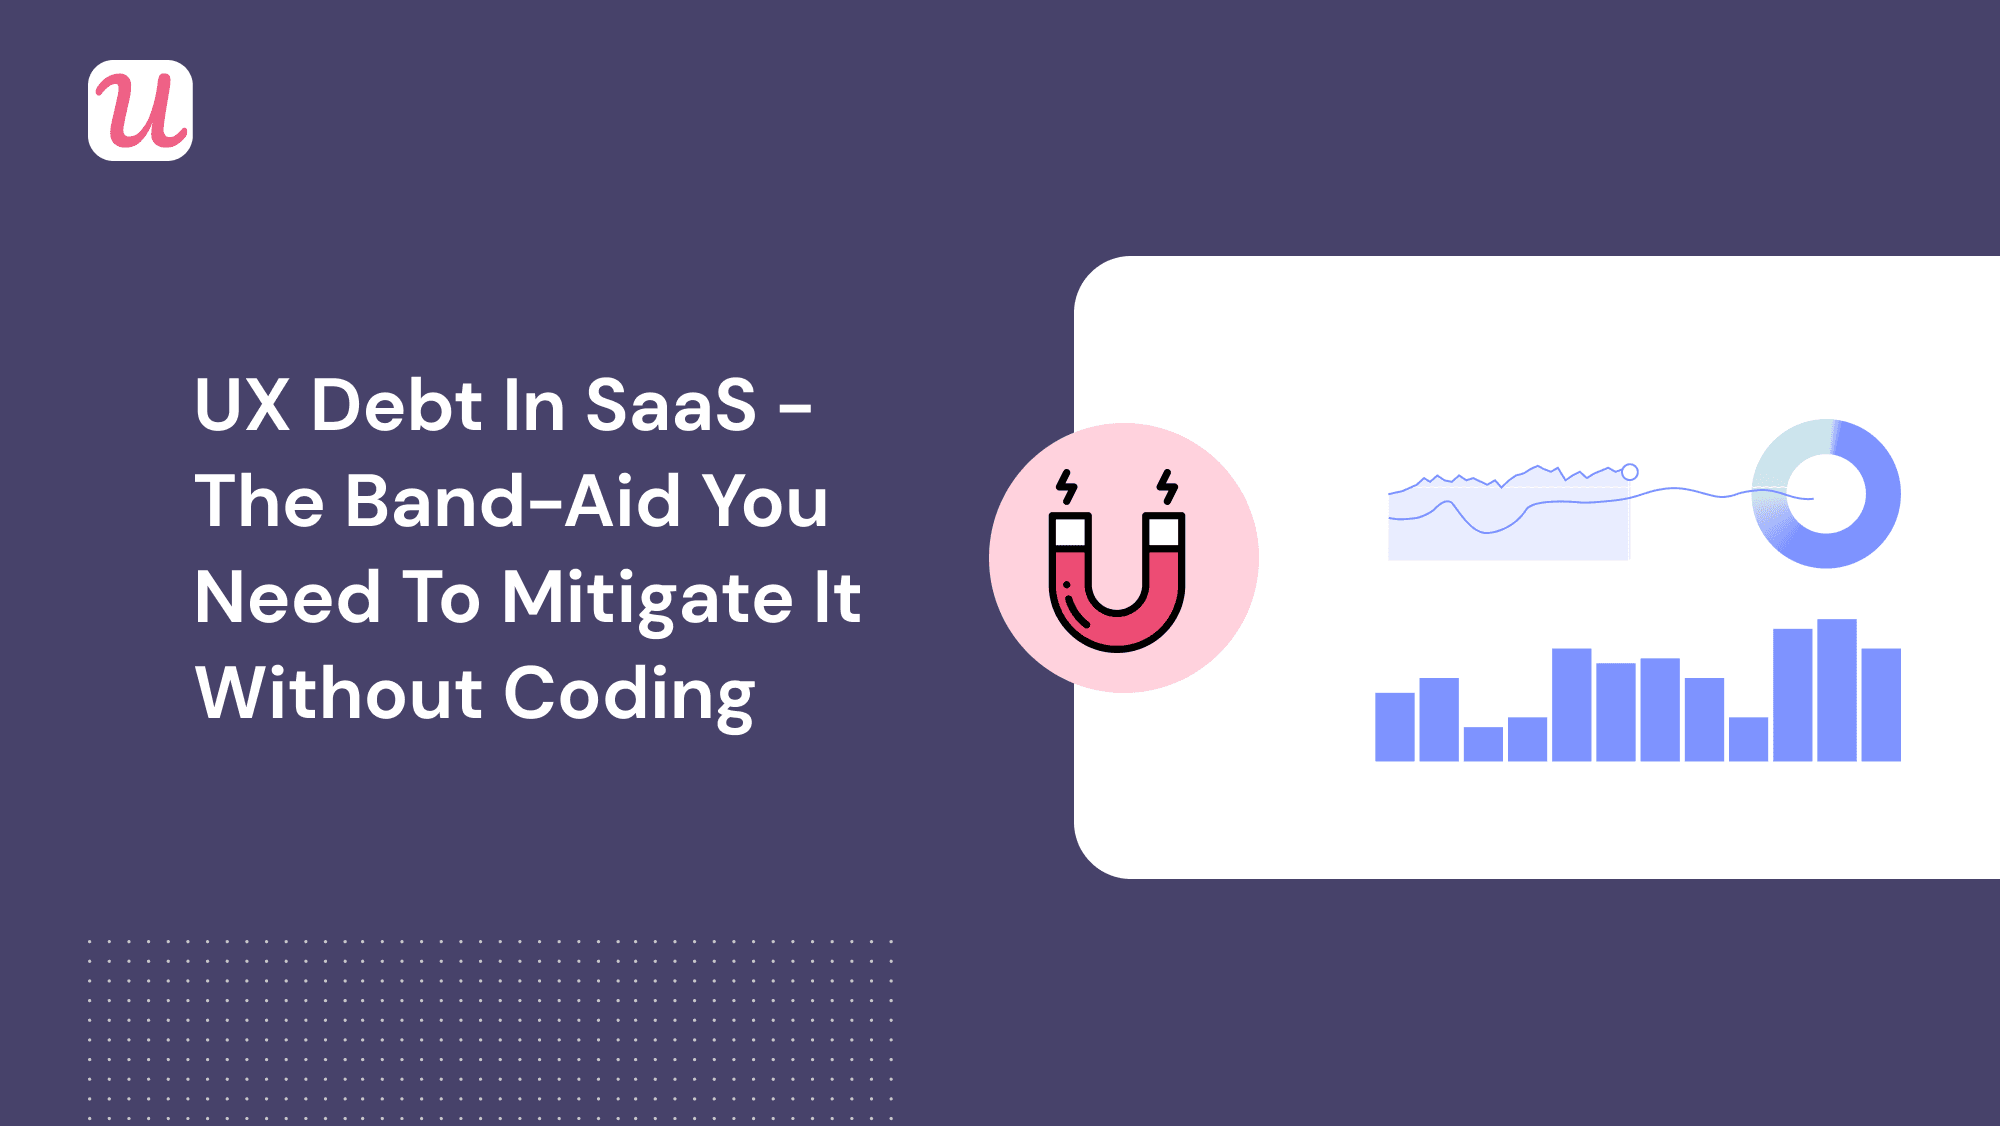 UX Debt in SaaS - The Band-Aid You Need to Mitigate It Without Coding